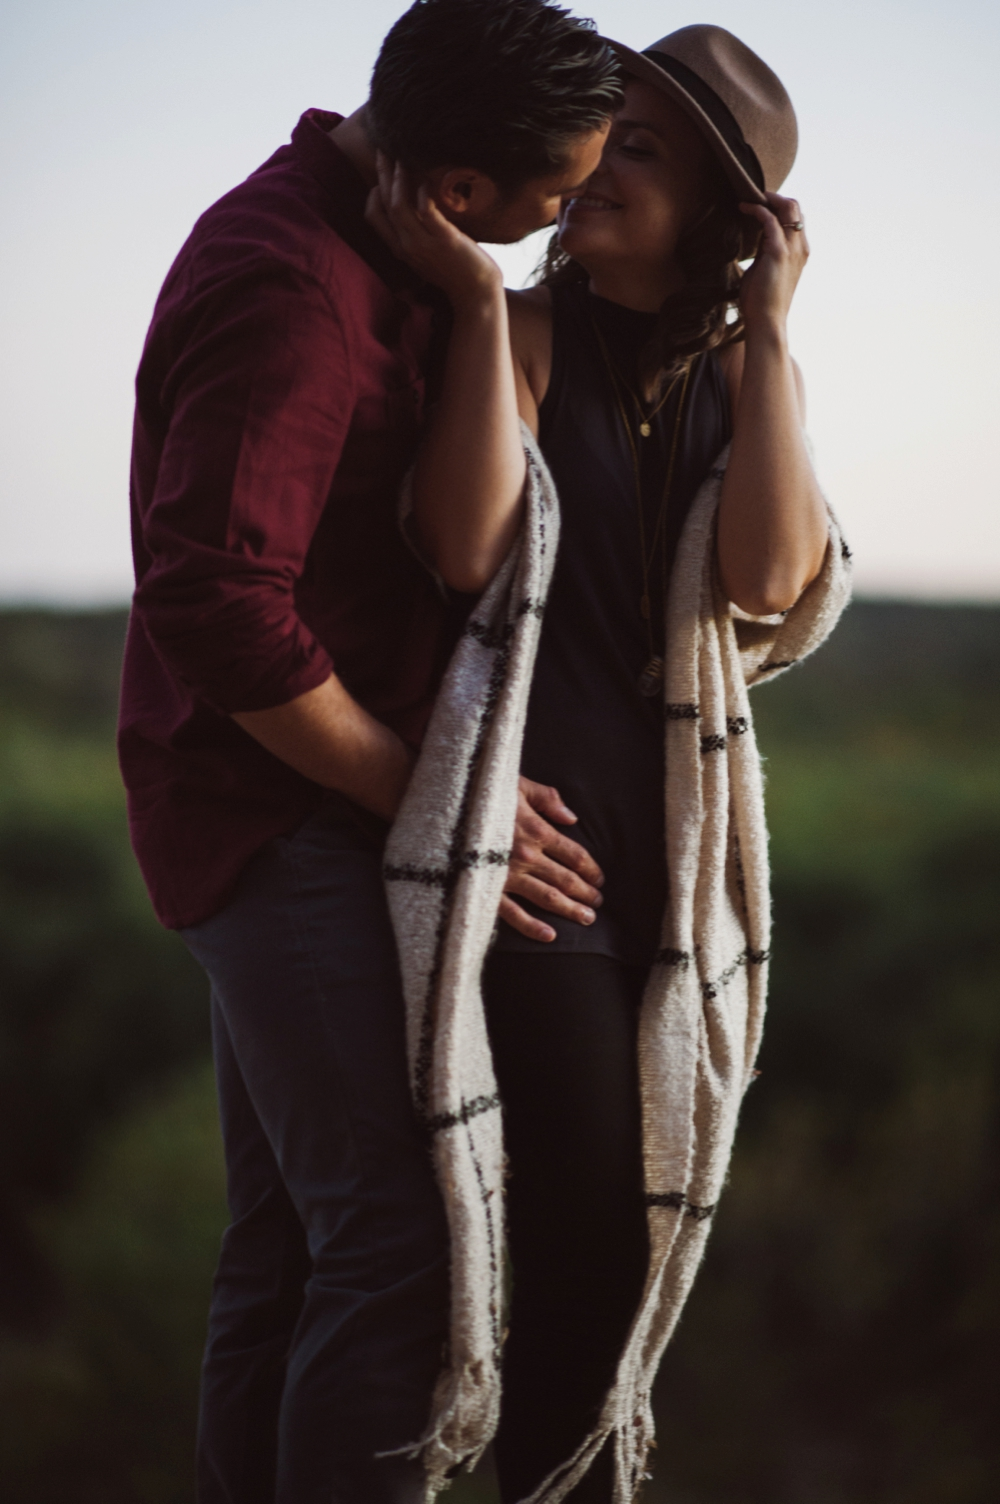 Castlewood-scenic-engagement-photos_1299.jpg